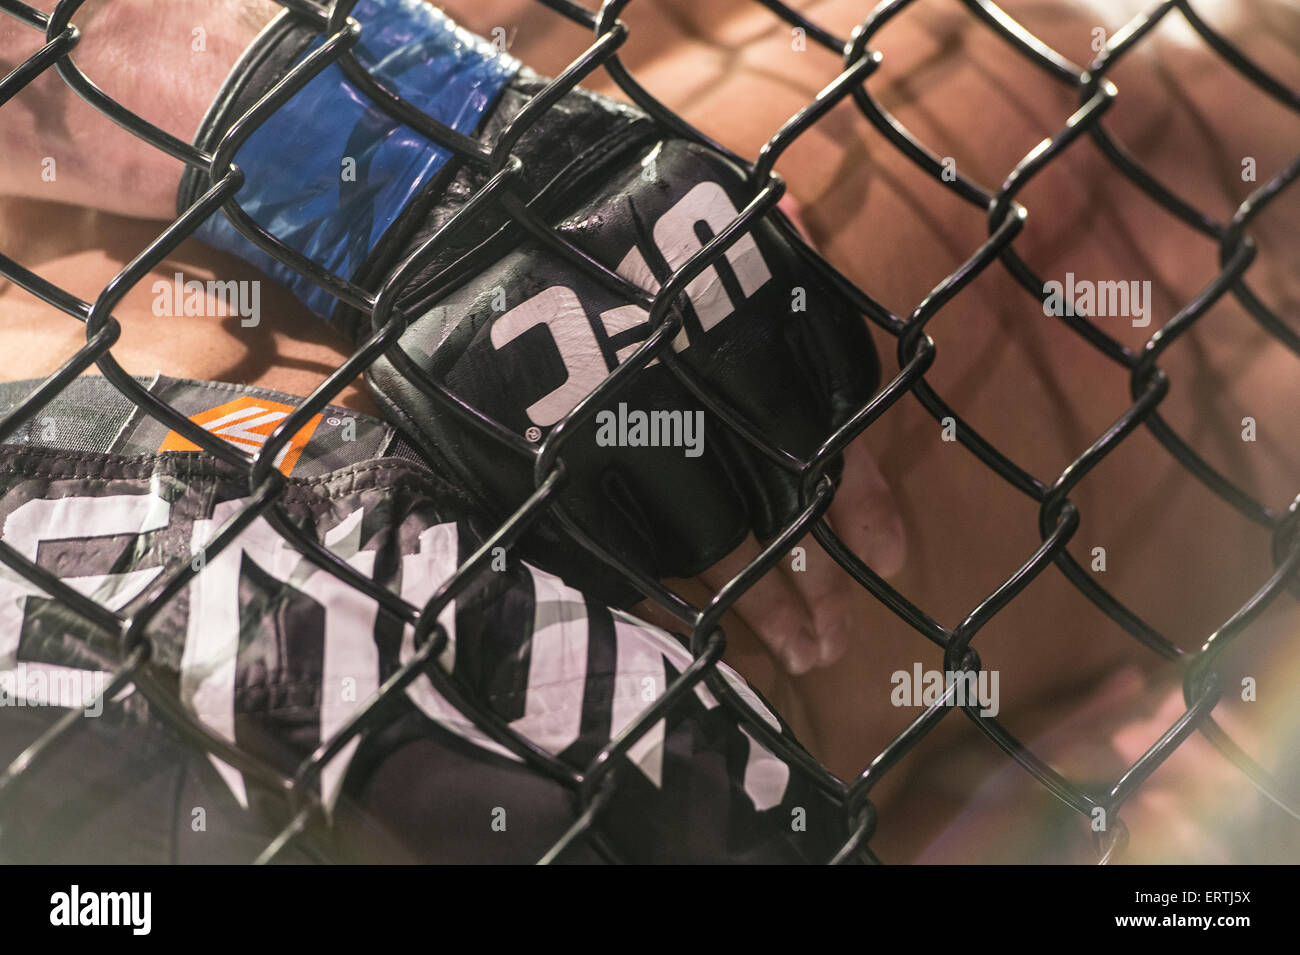 UFC Cage fighters gloves grapple in the ring up against the cage in the Ultimate Fighting Championship mma bout - Stock Image